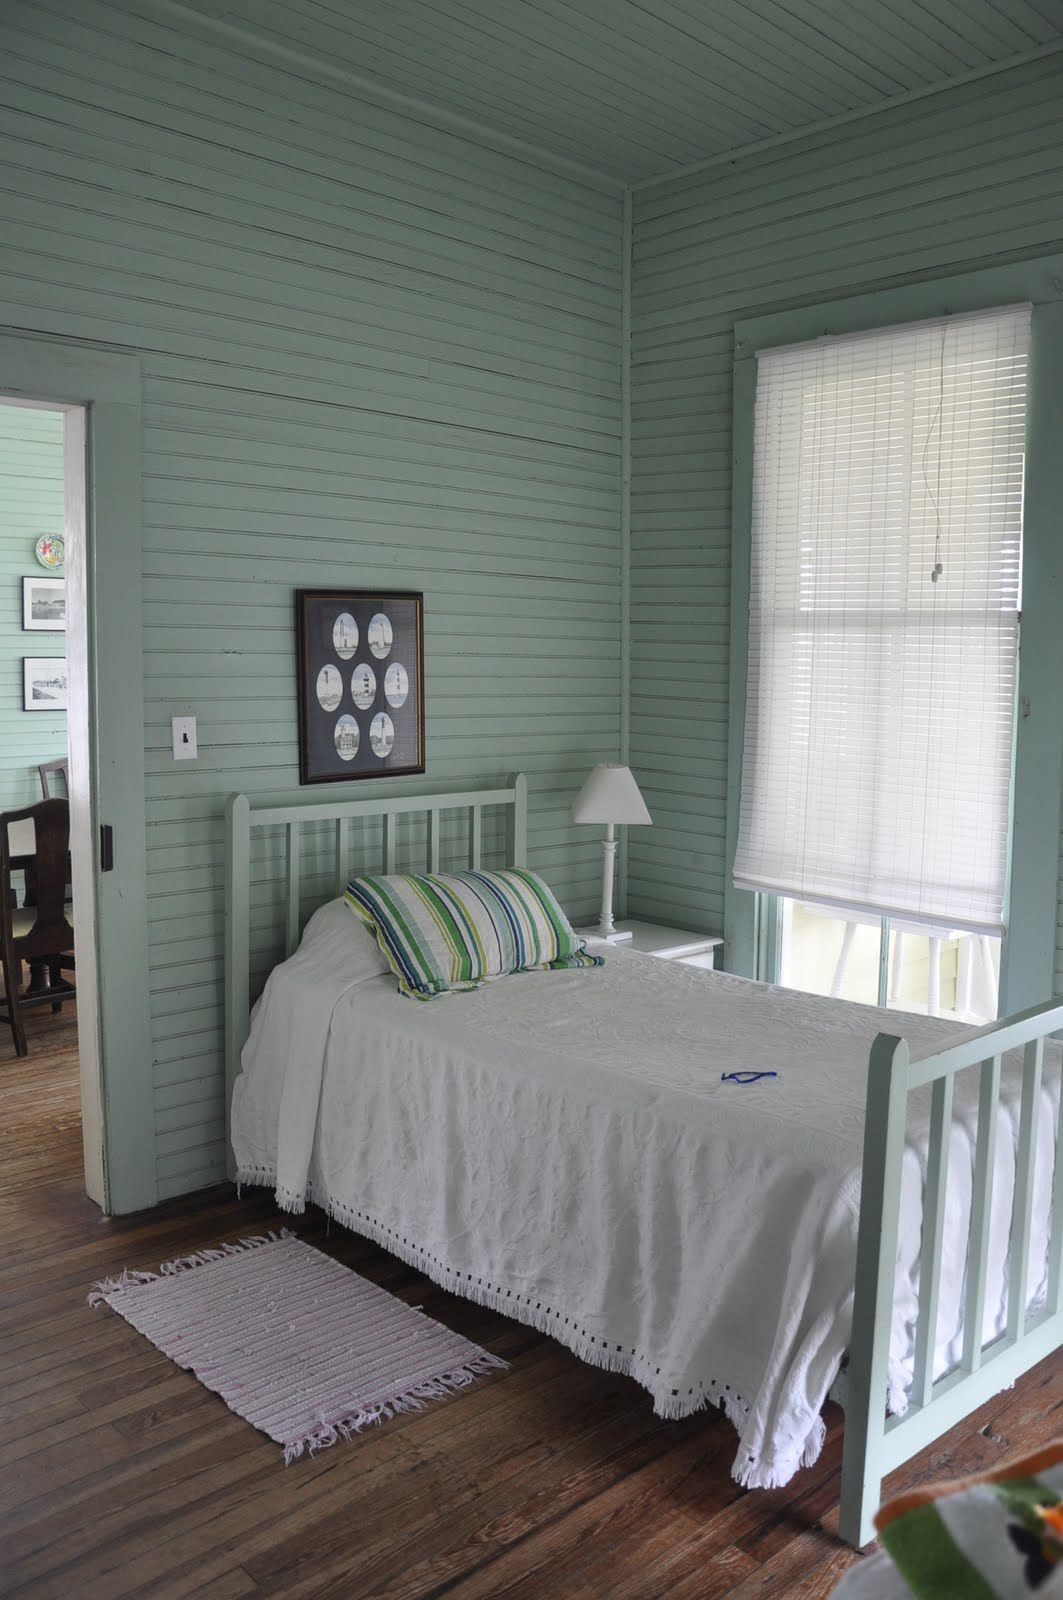 Jane Coslick CottagesLove this paint color for